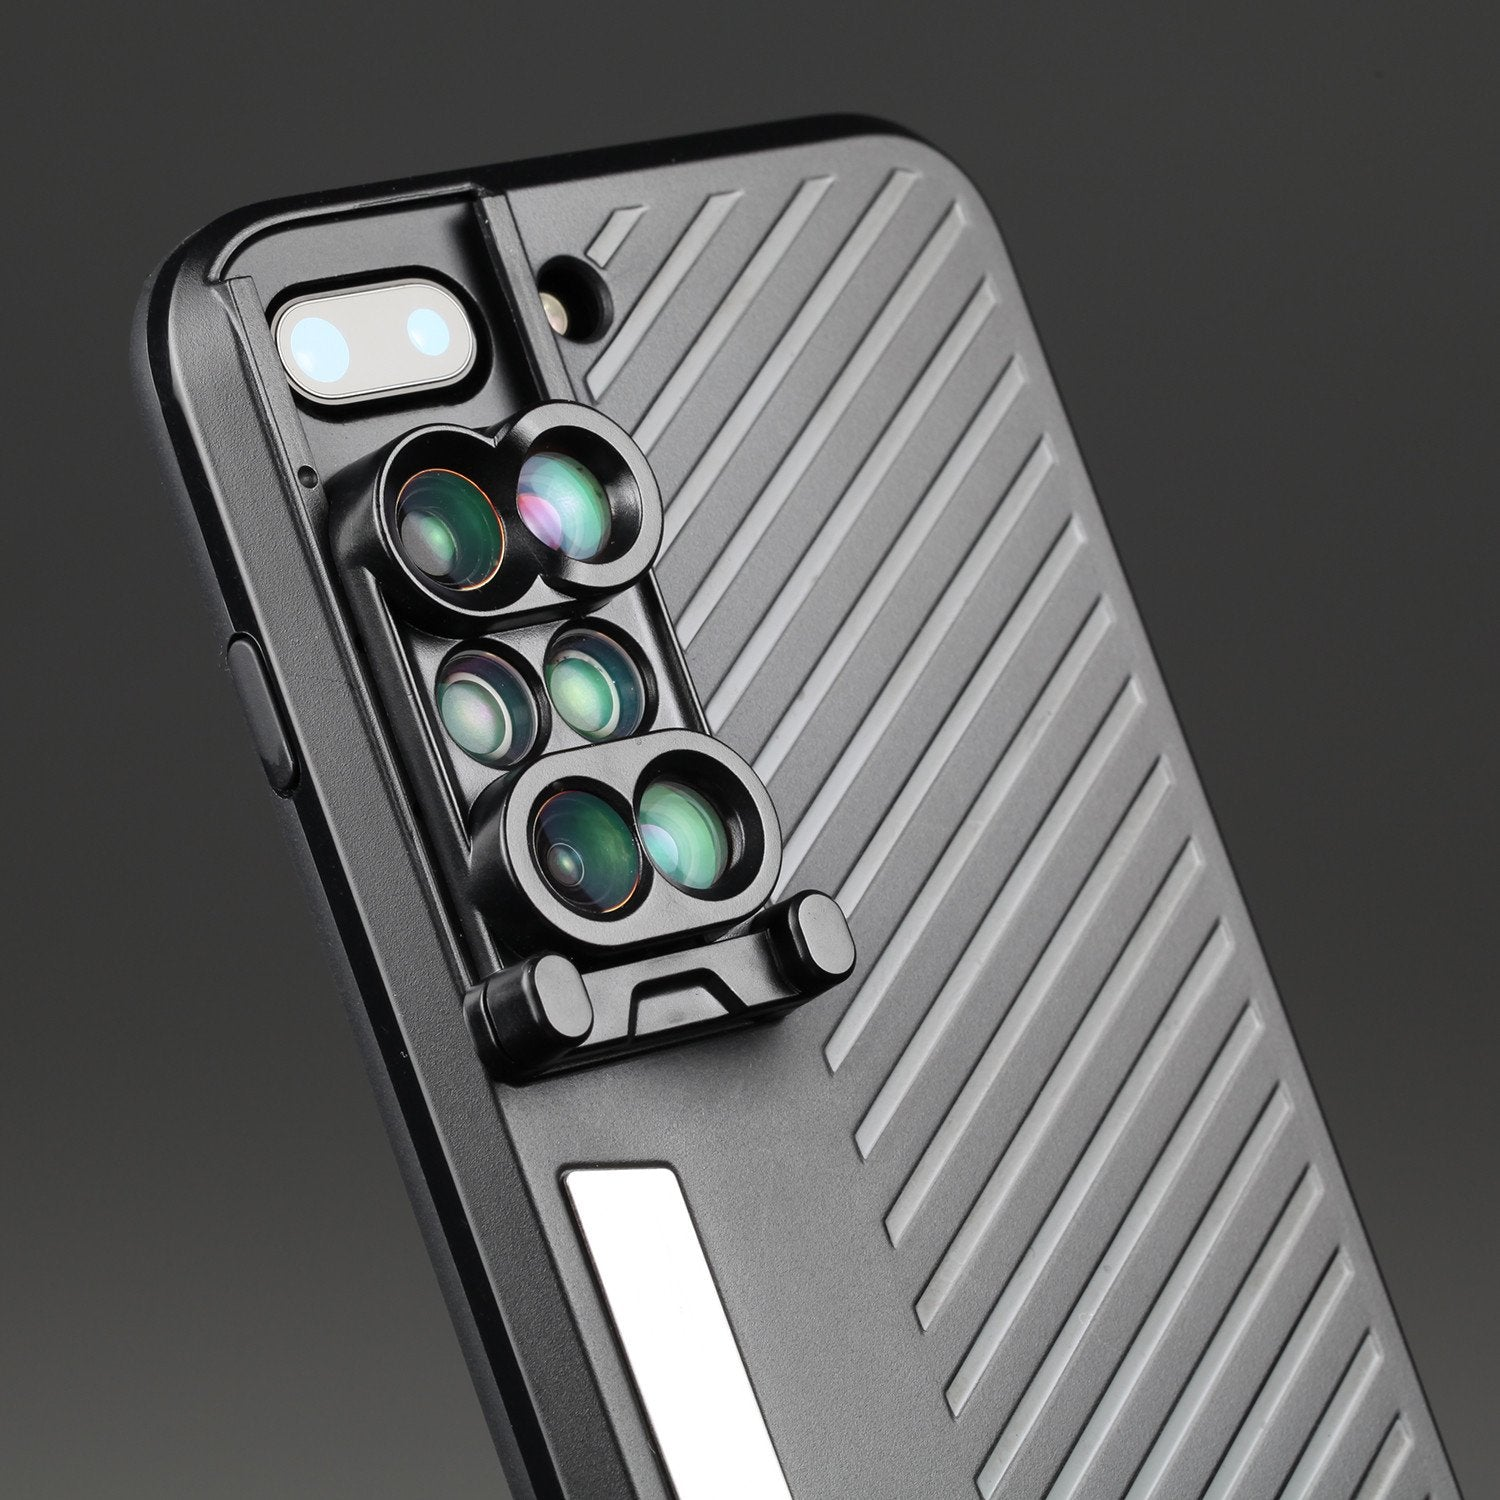 Dual Optics Lens Kit Case for iPhone